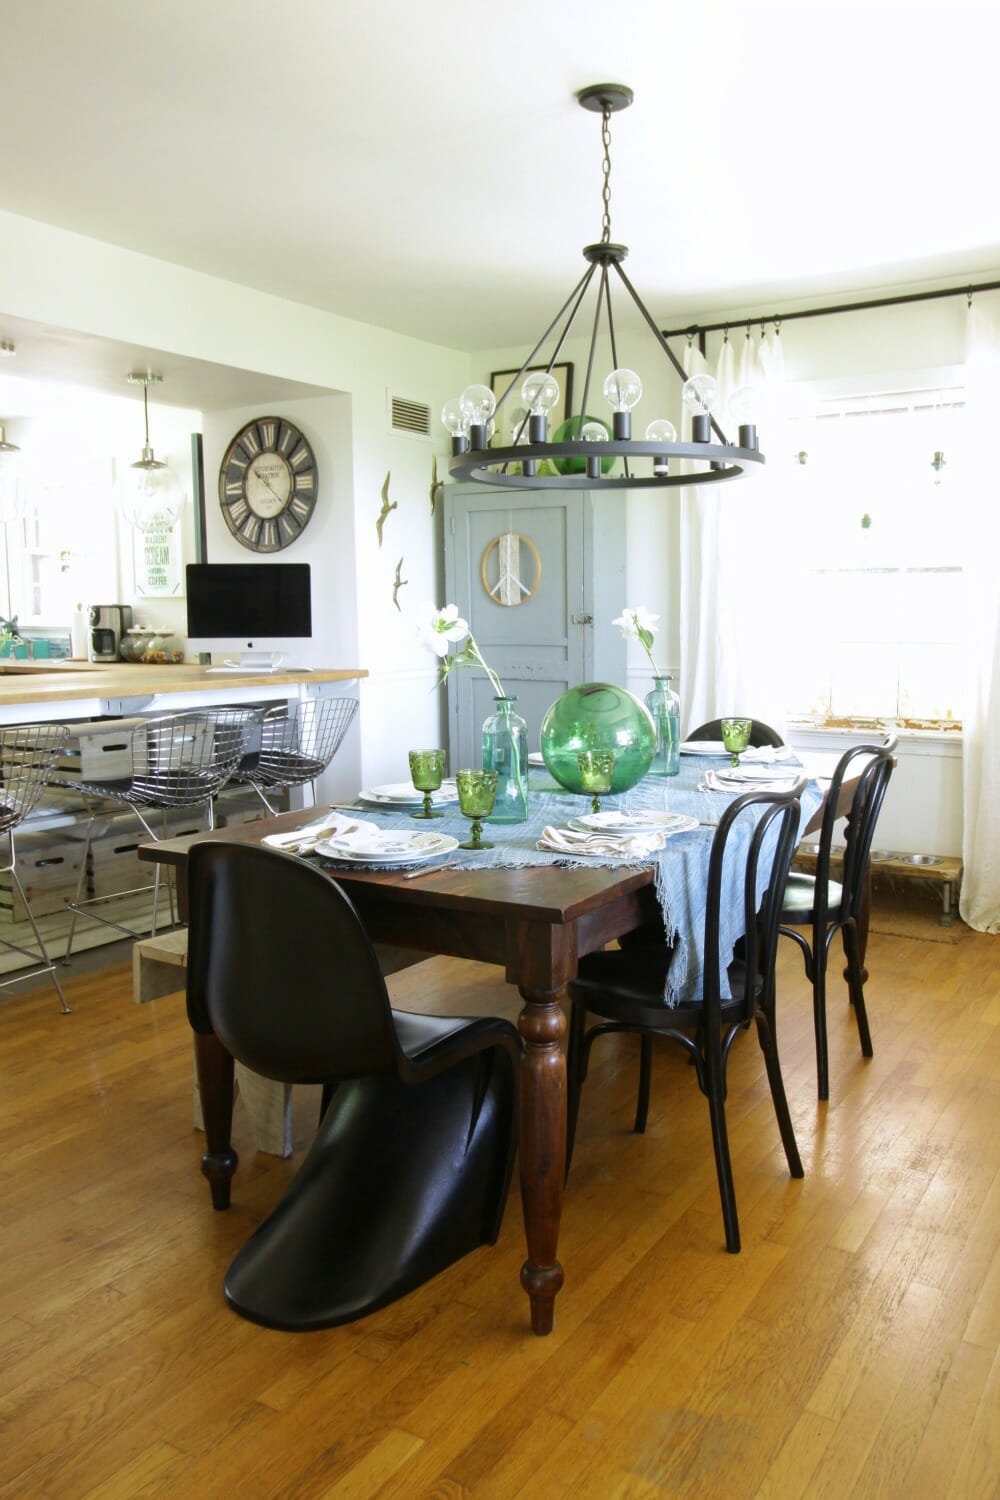 Modern boho eclectic dining room blue green cassie bustamante eclectic modern bohemian dining room in blues and greens dzzzfo